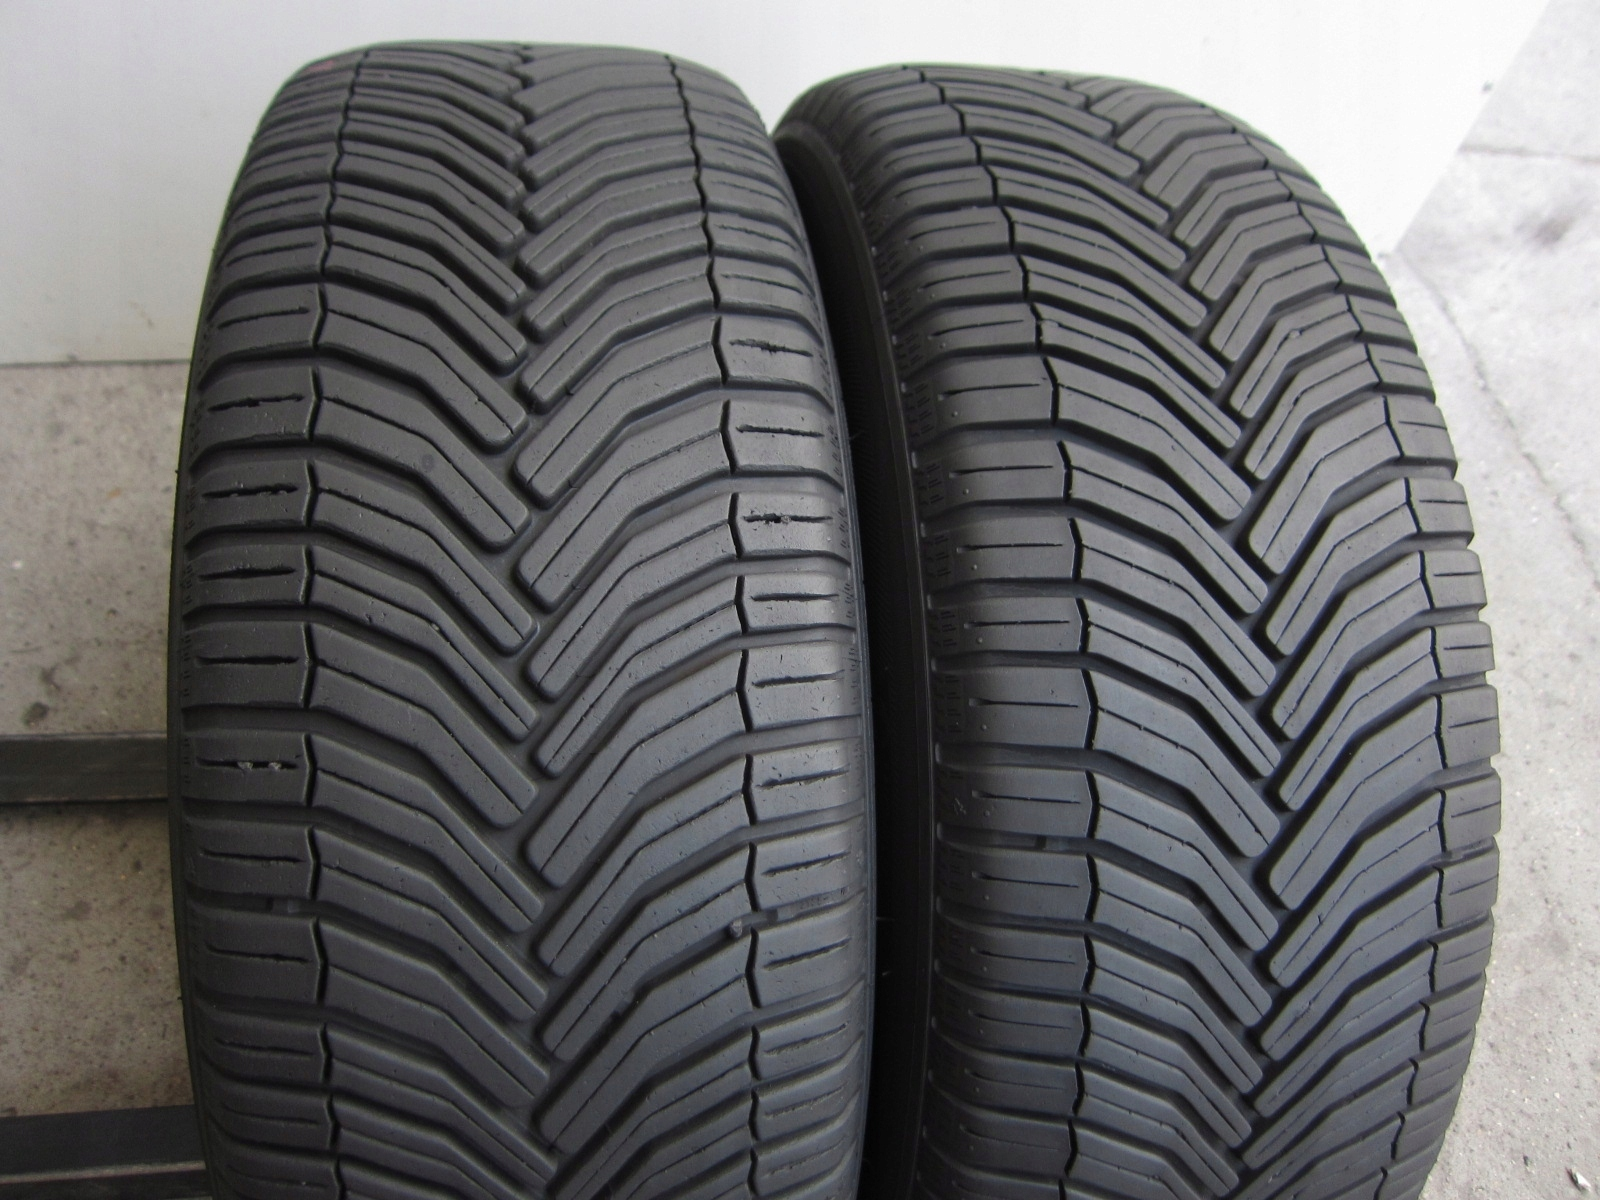 2x Michelin Cross Climate 20550r17 6mm 7561928296 Oficjalne